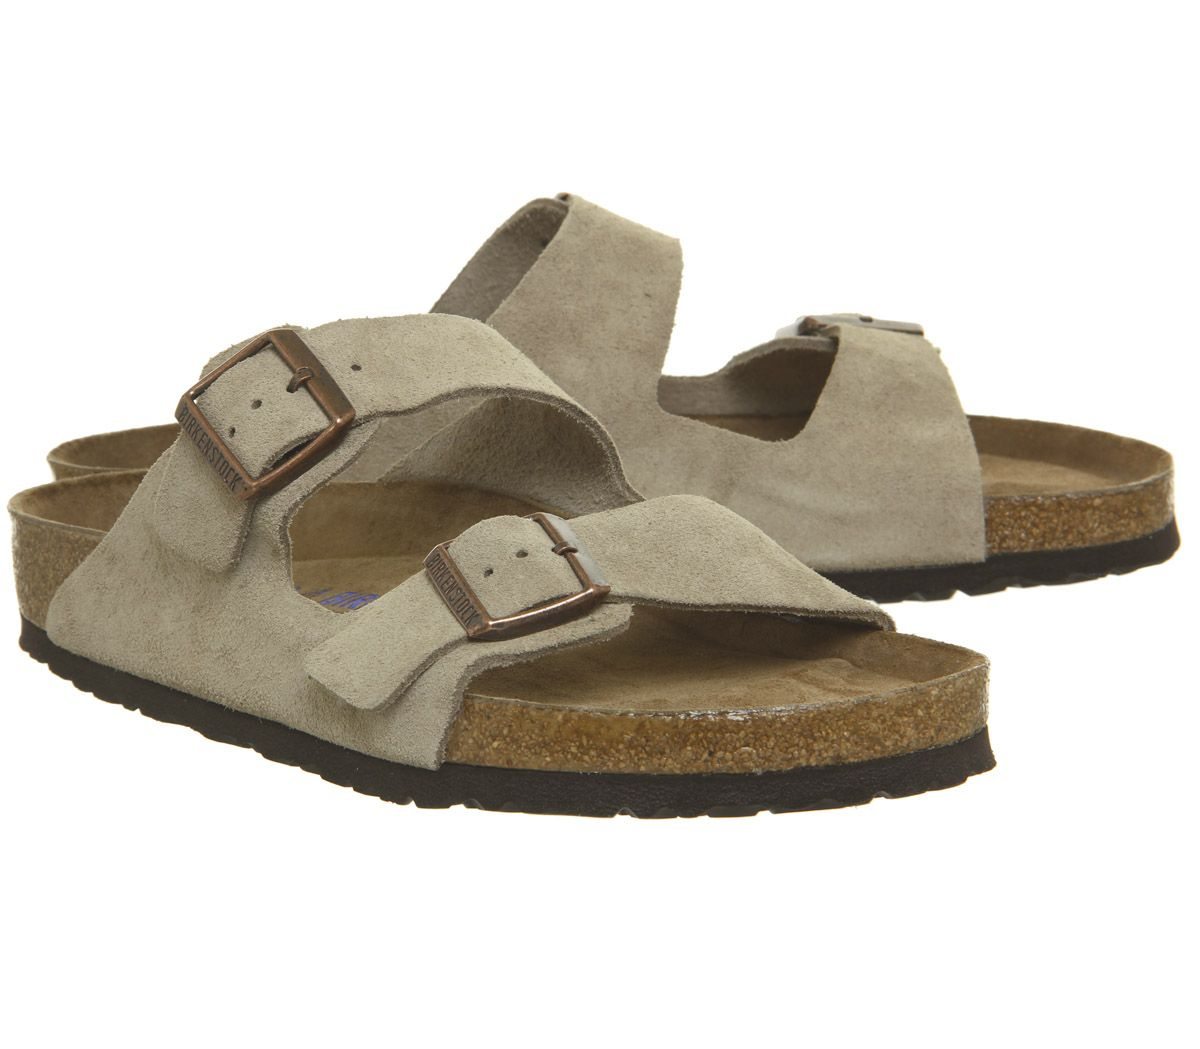 Details About Men Birkenstock Arizona Two Strap Sandals Taupe Sandals- Show  Original Title à Code Couleur Taupe